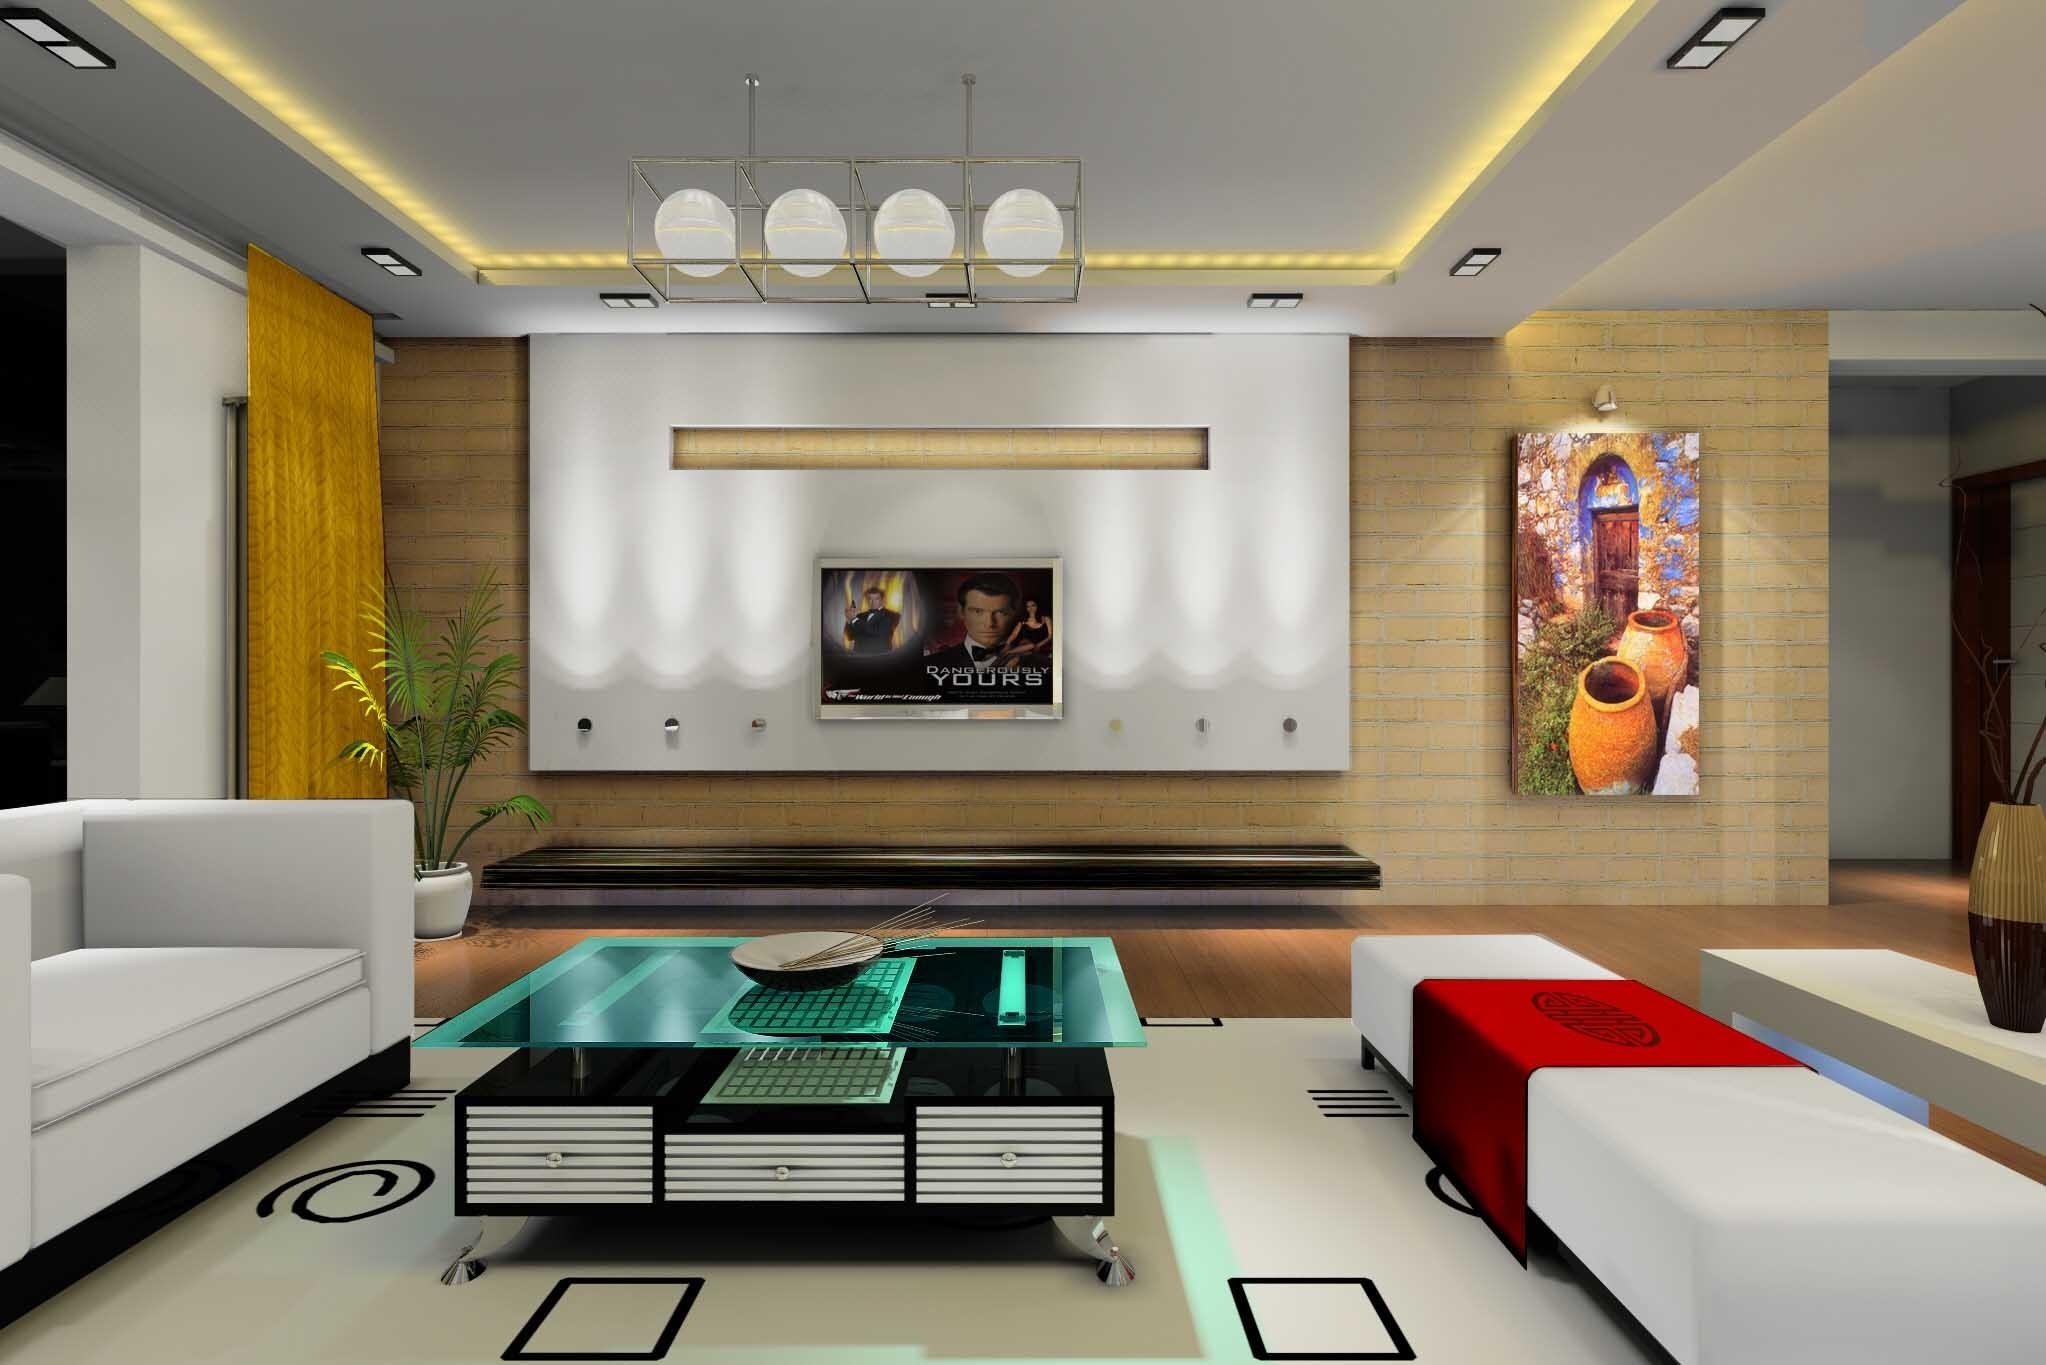 37 Inspirational Living Room Styles 2018 That You Ll Wish To Have Right Now Trends In 2020 Photo Gallery Decoratorist